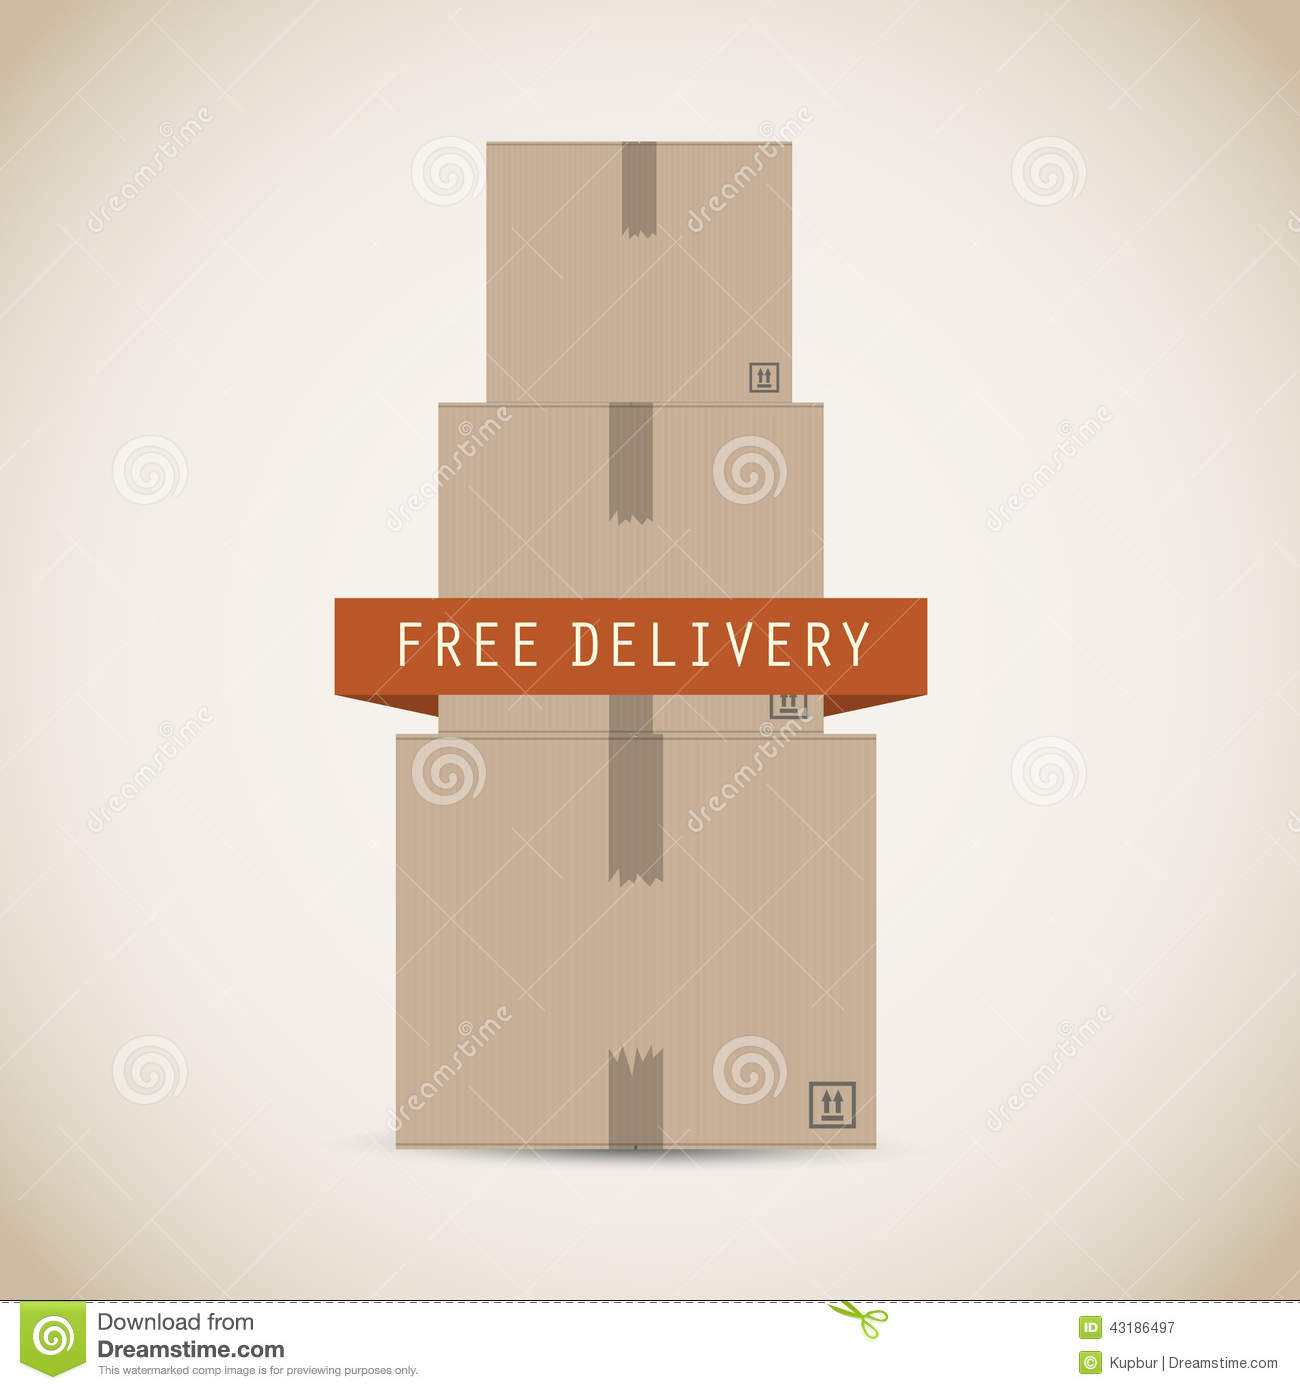 Download Free Delivery Cardboard Boxes Stock Vector - Illustration of surface, paper: 43186497